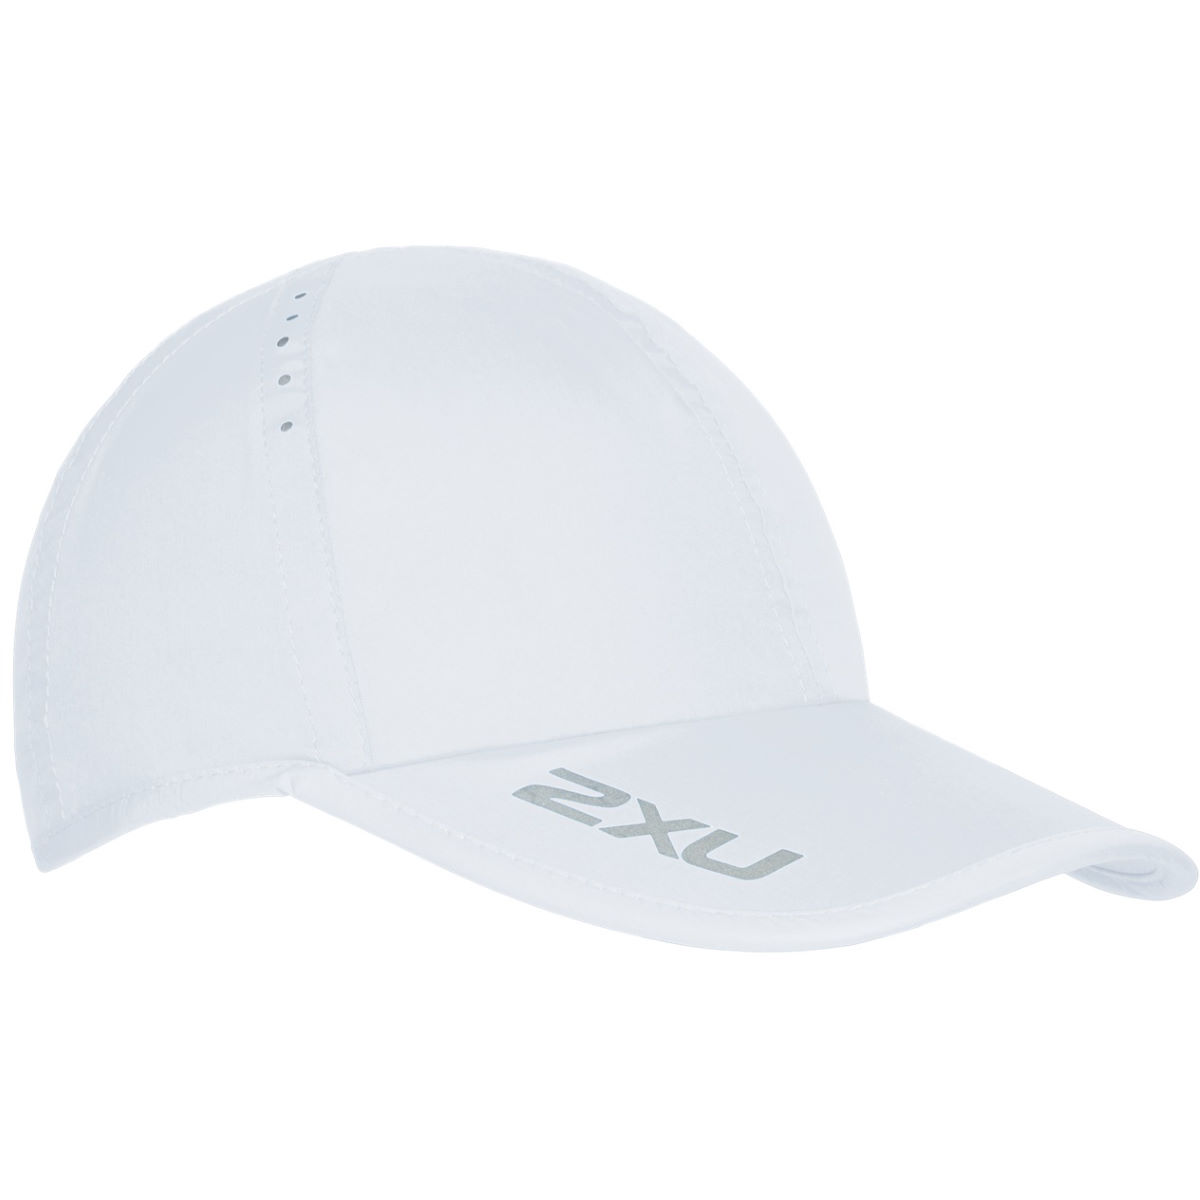 2XU Run Cap - Kappen